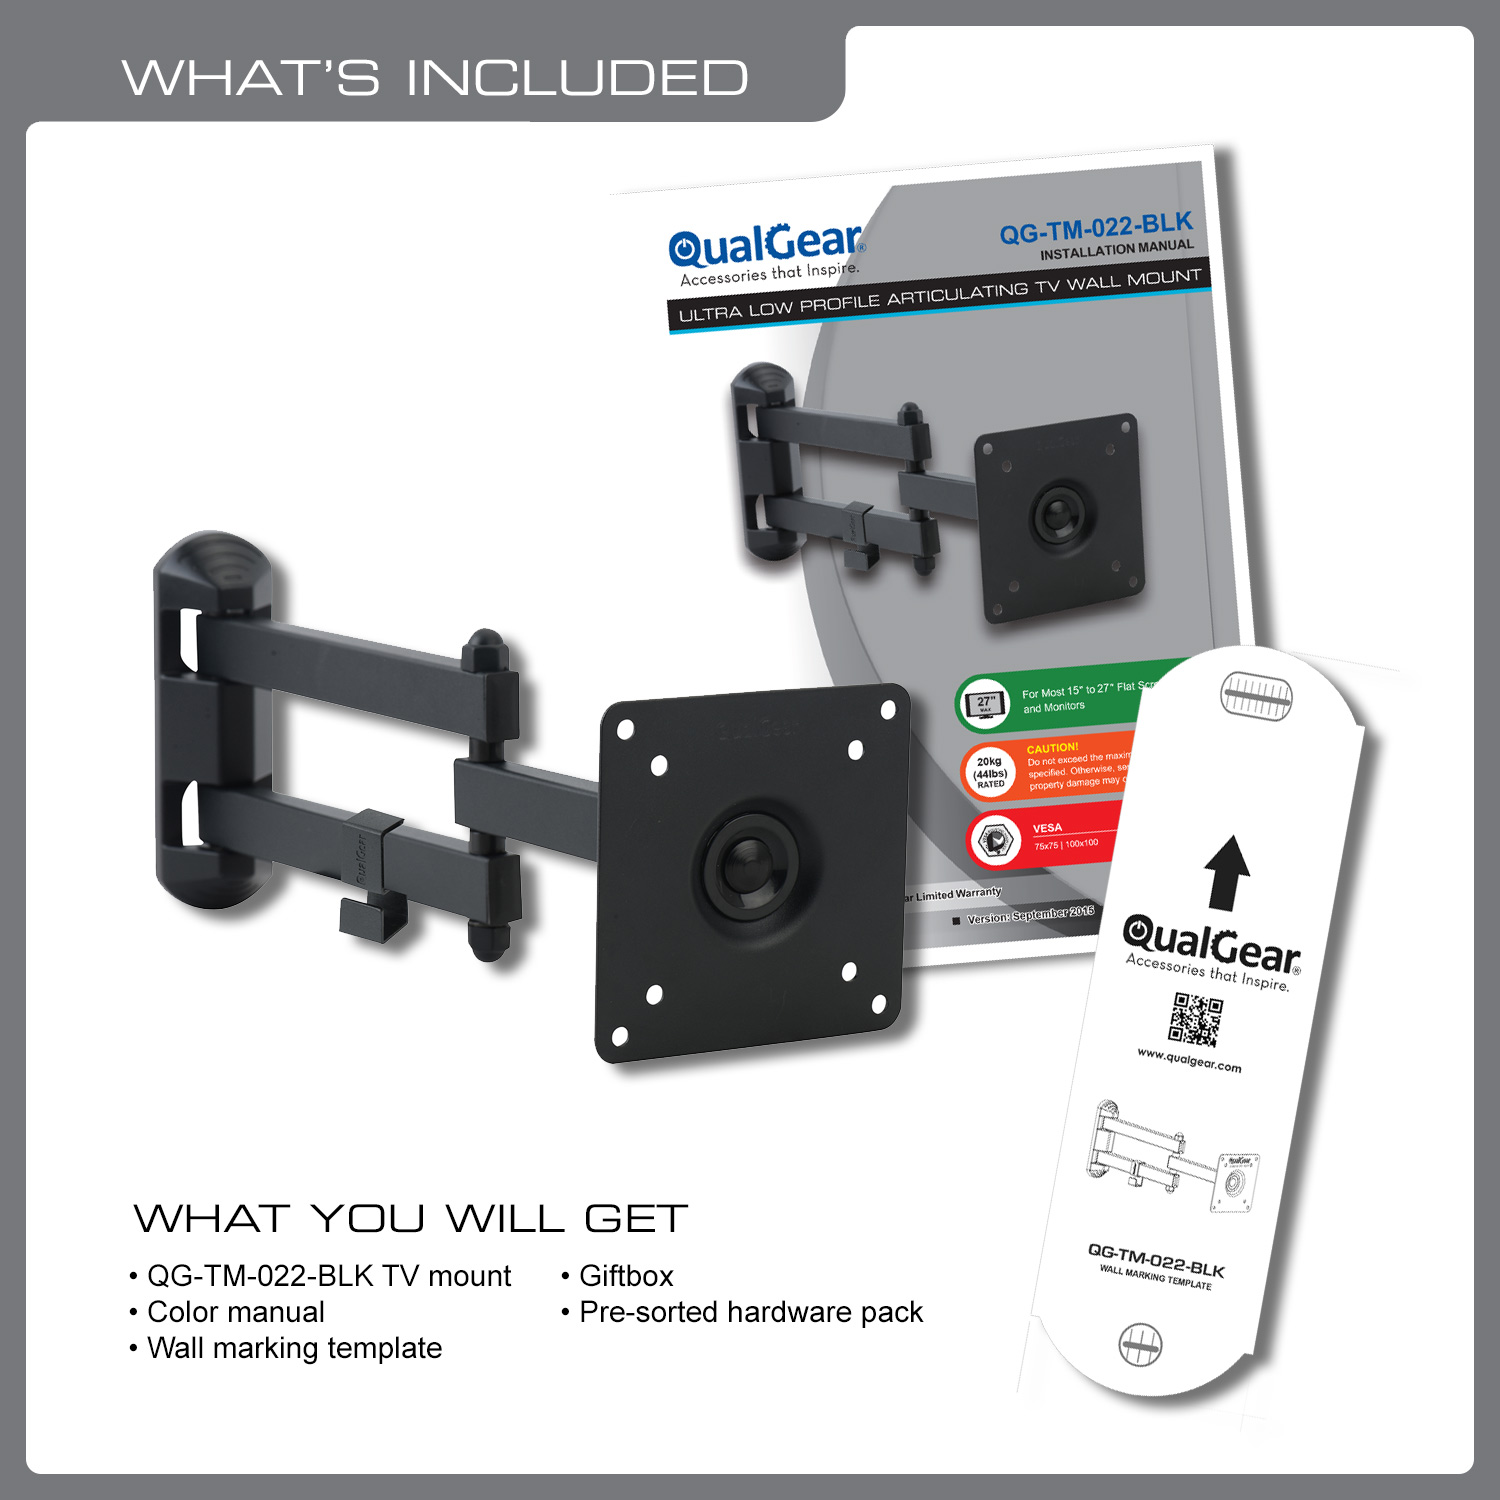 QualGear® QG-TM-022-BLK Articulating TV Wall Mount 15-27 Inch, Black